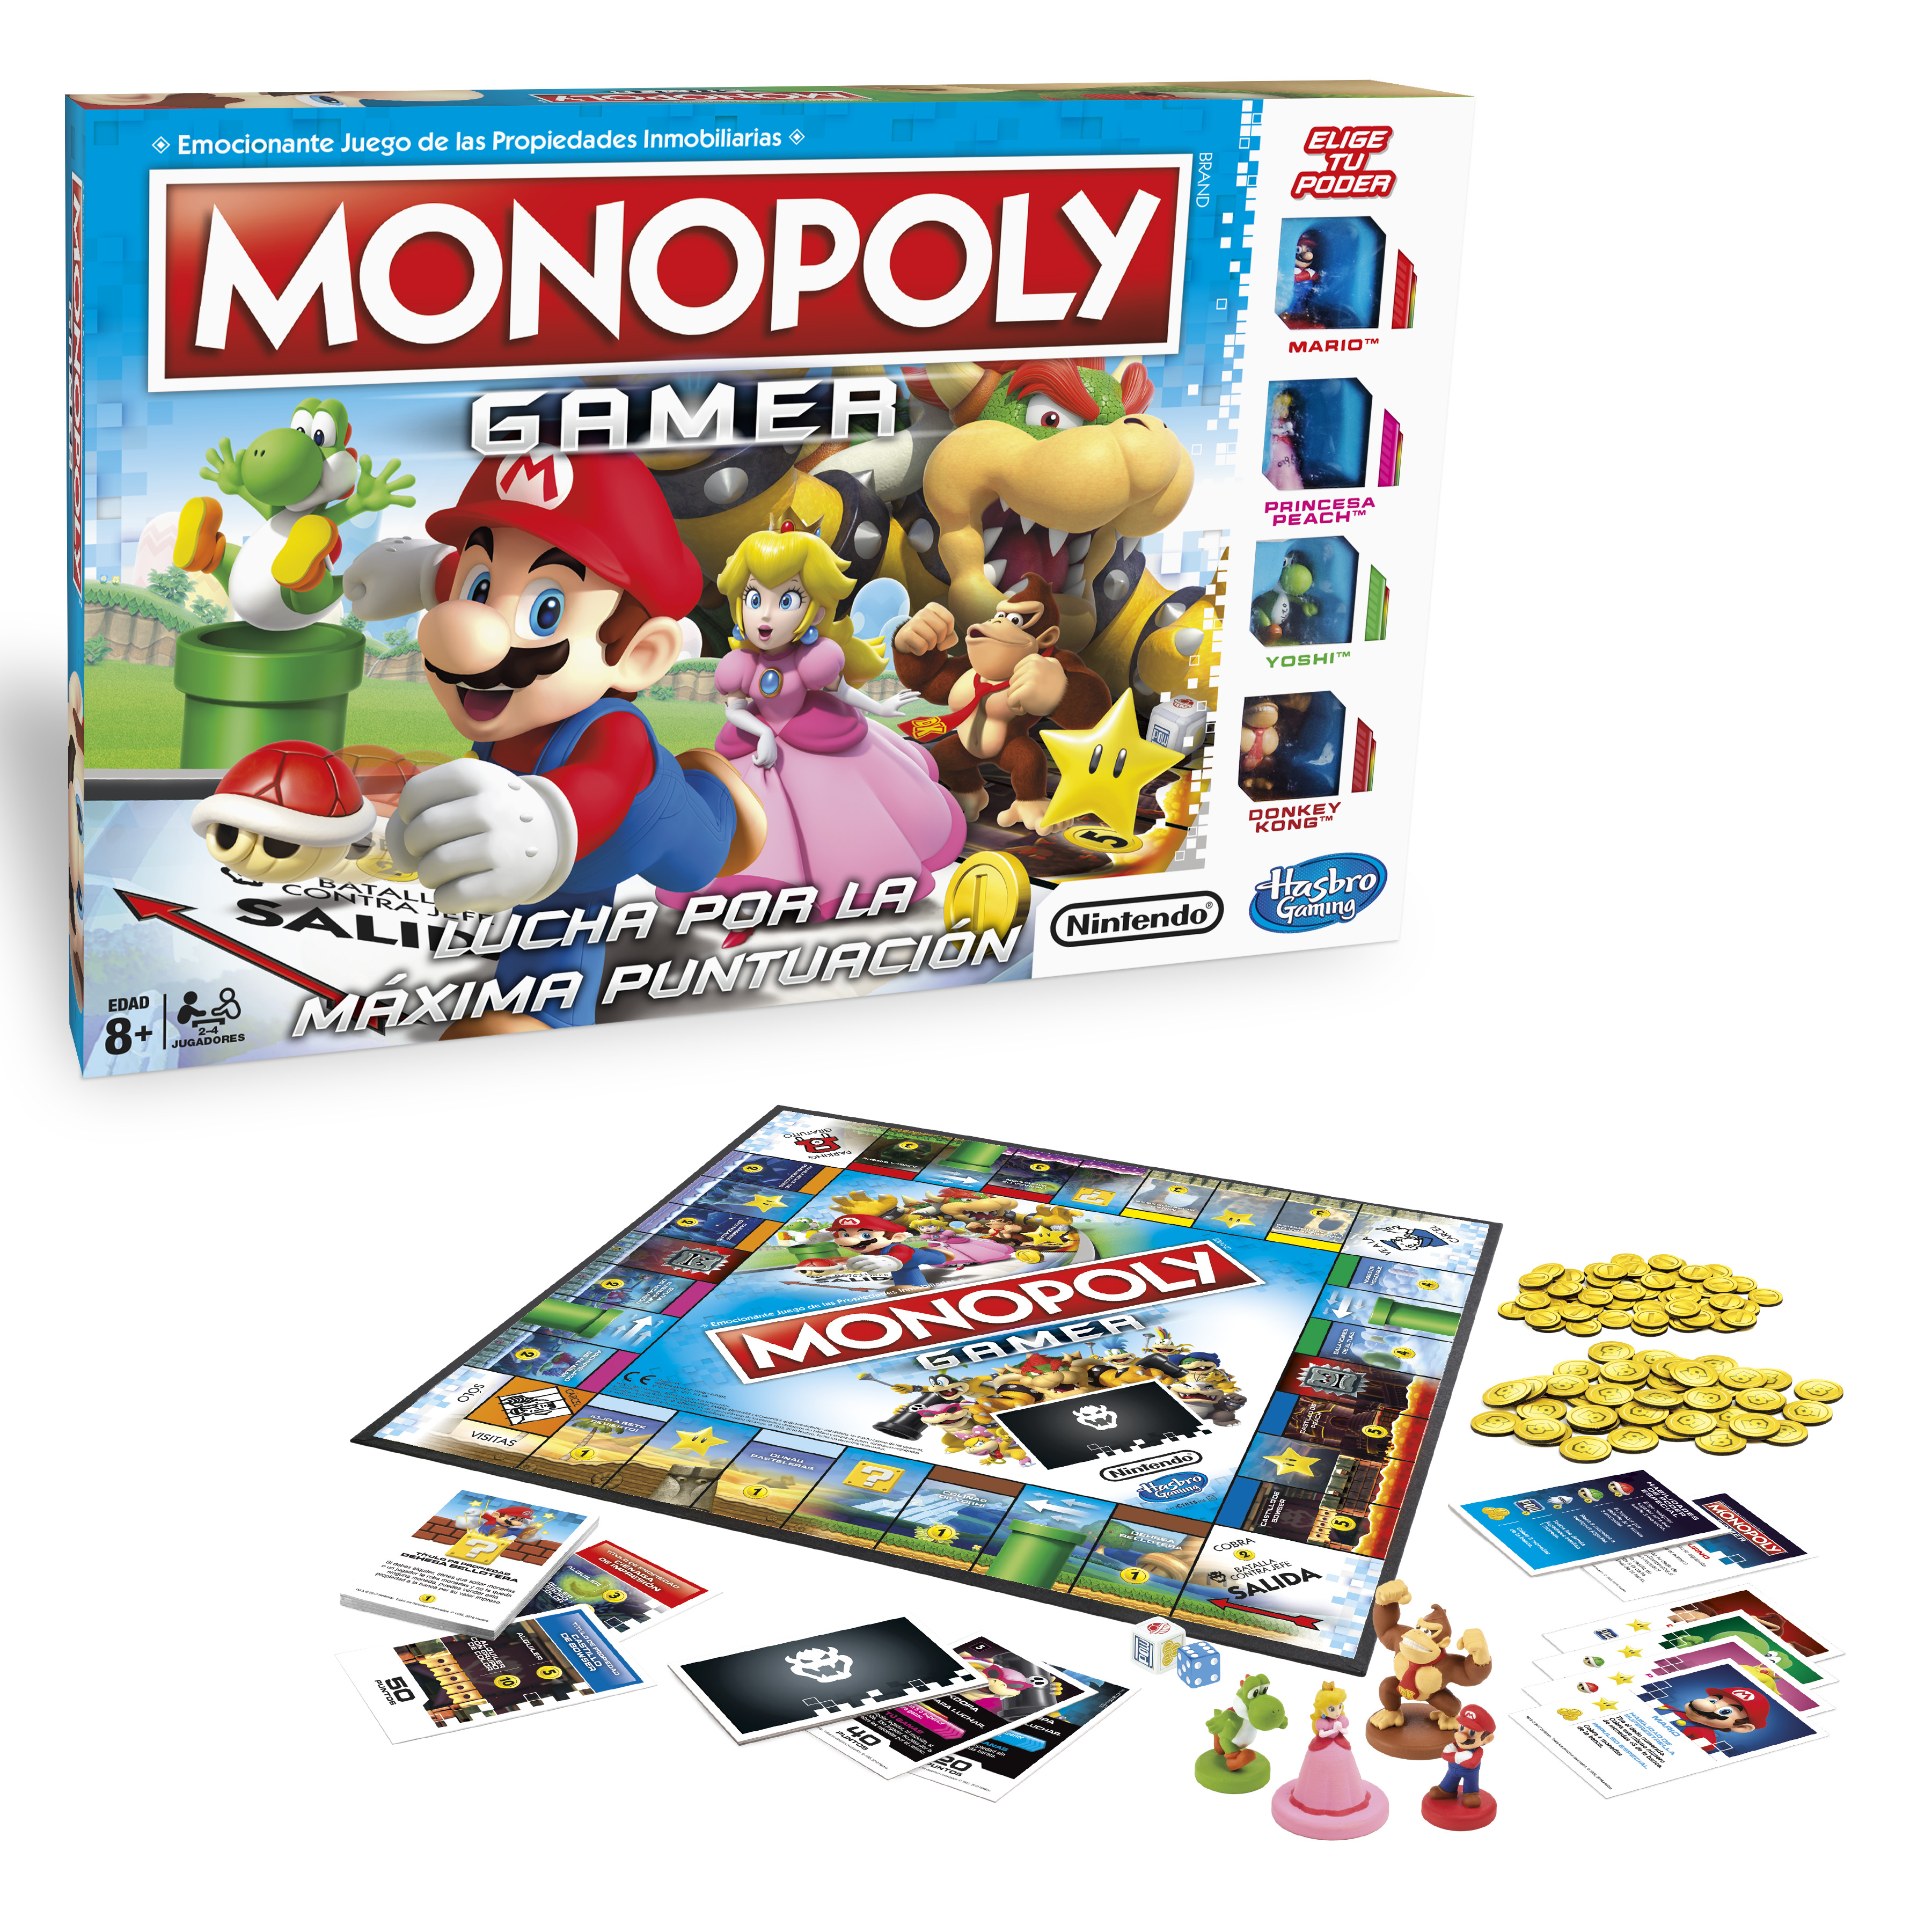 Monopoly Gamer Juguetron